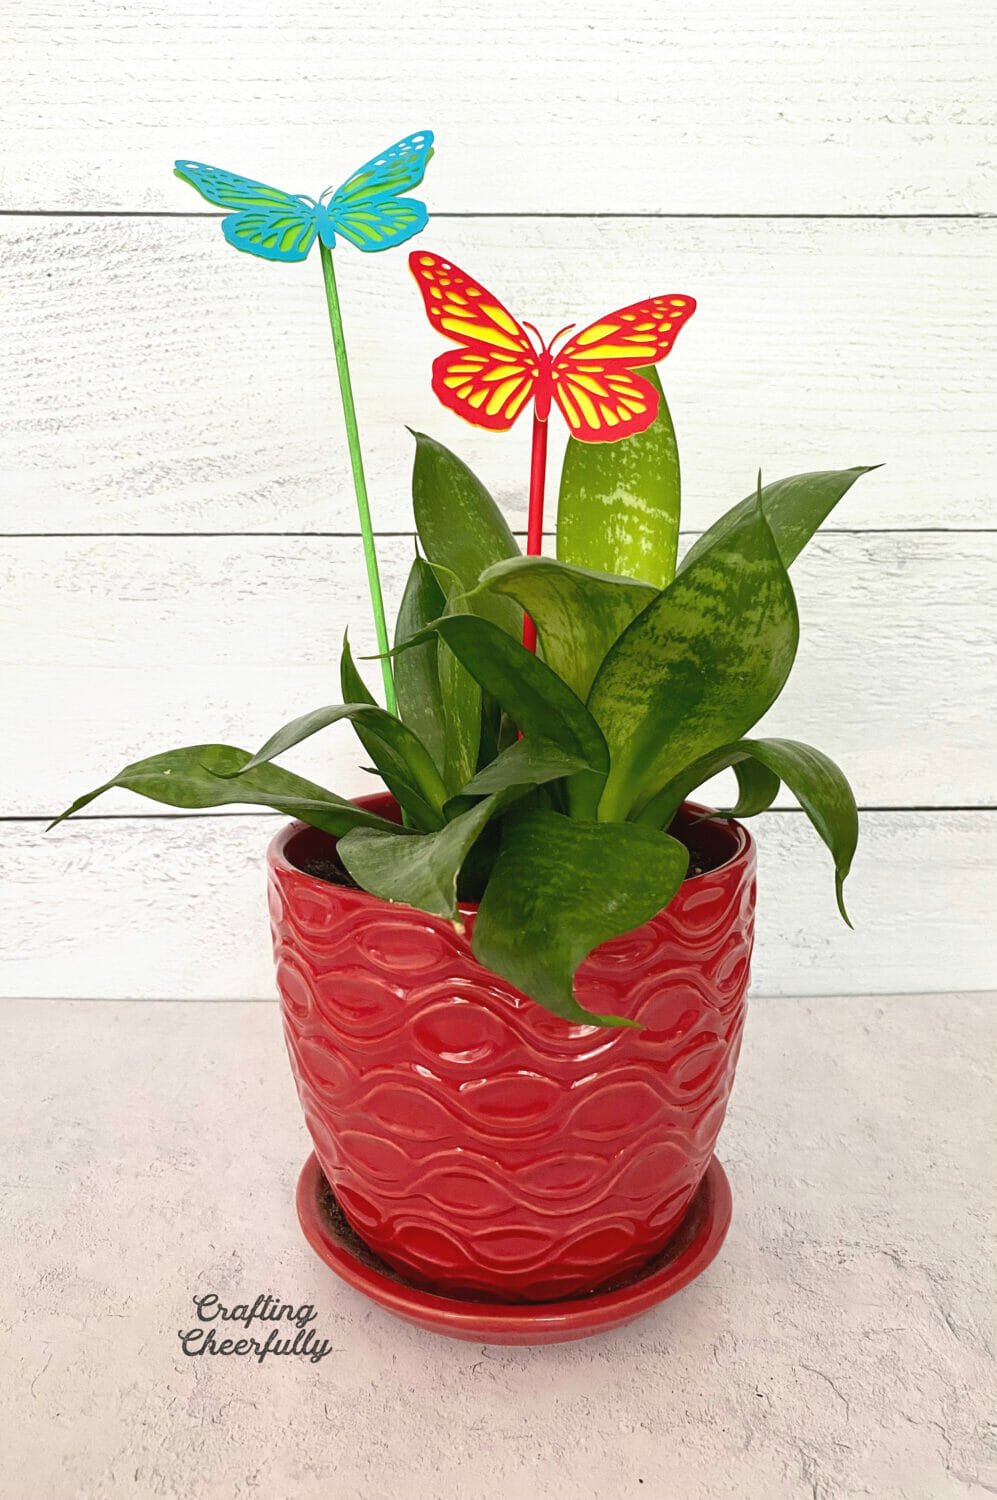 Butterfly plant stakes are in a house plant.